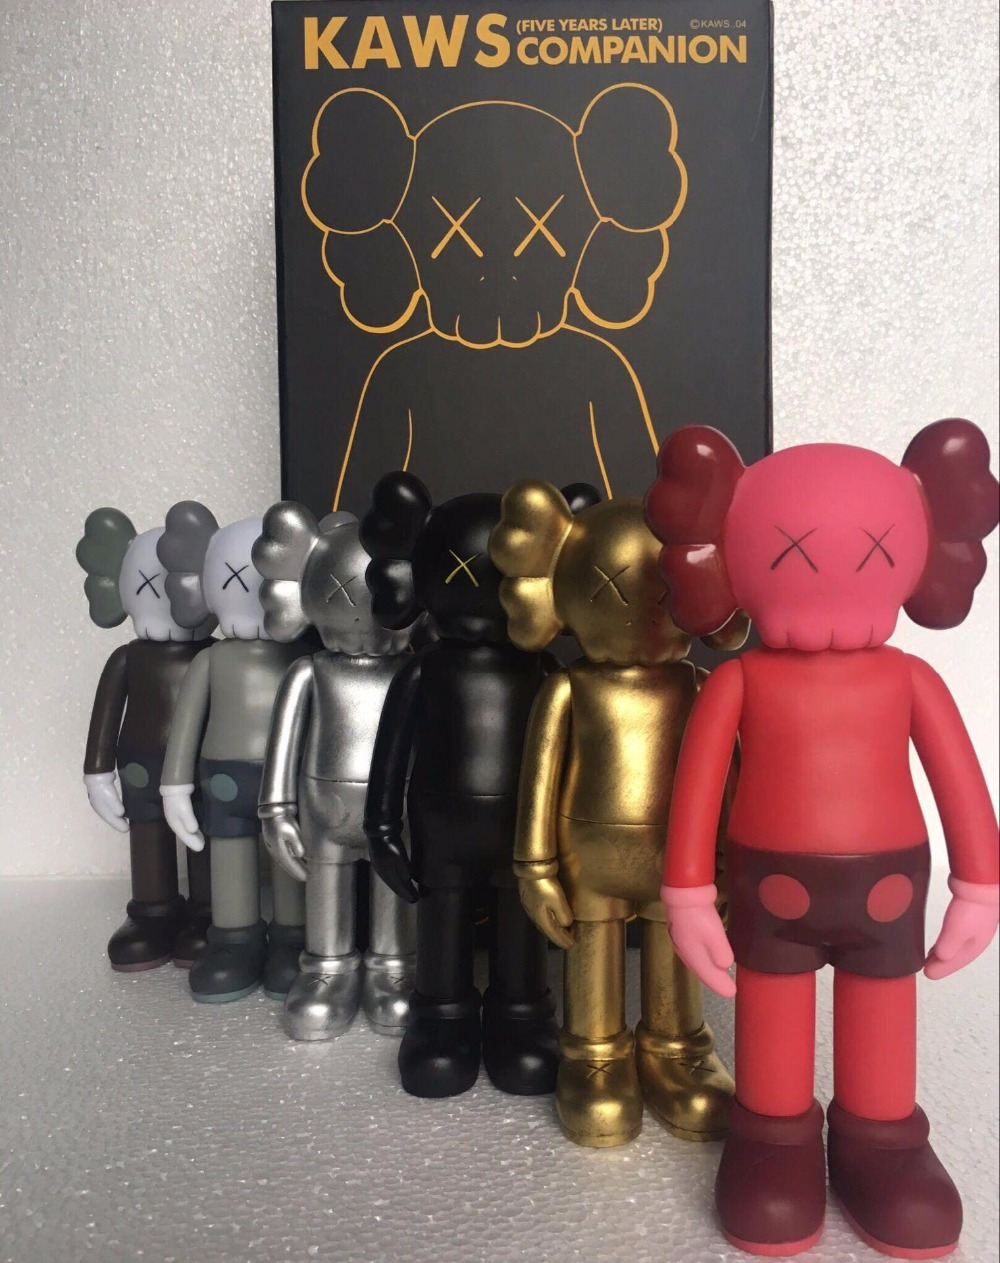 MANDKaws planet doll 16 inches dolls hand-done decoration christmas gift original fake bf00111MANDKaws planet doll 16 inches dolls hand-done decoration christmas gift original fake bf00111